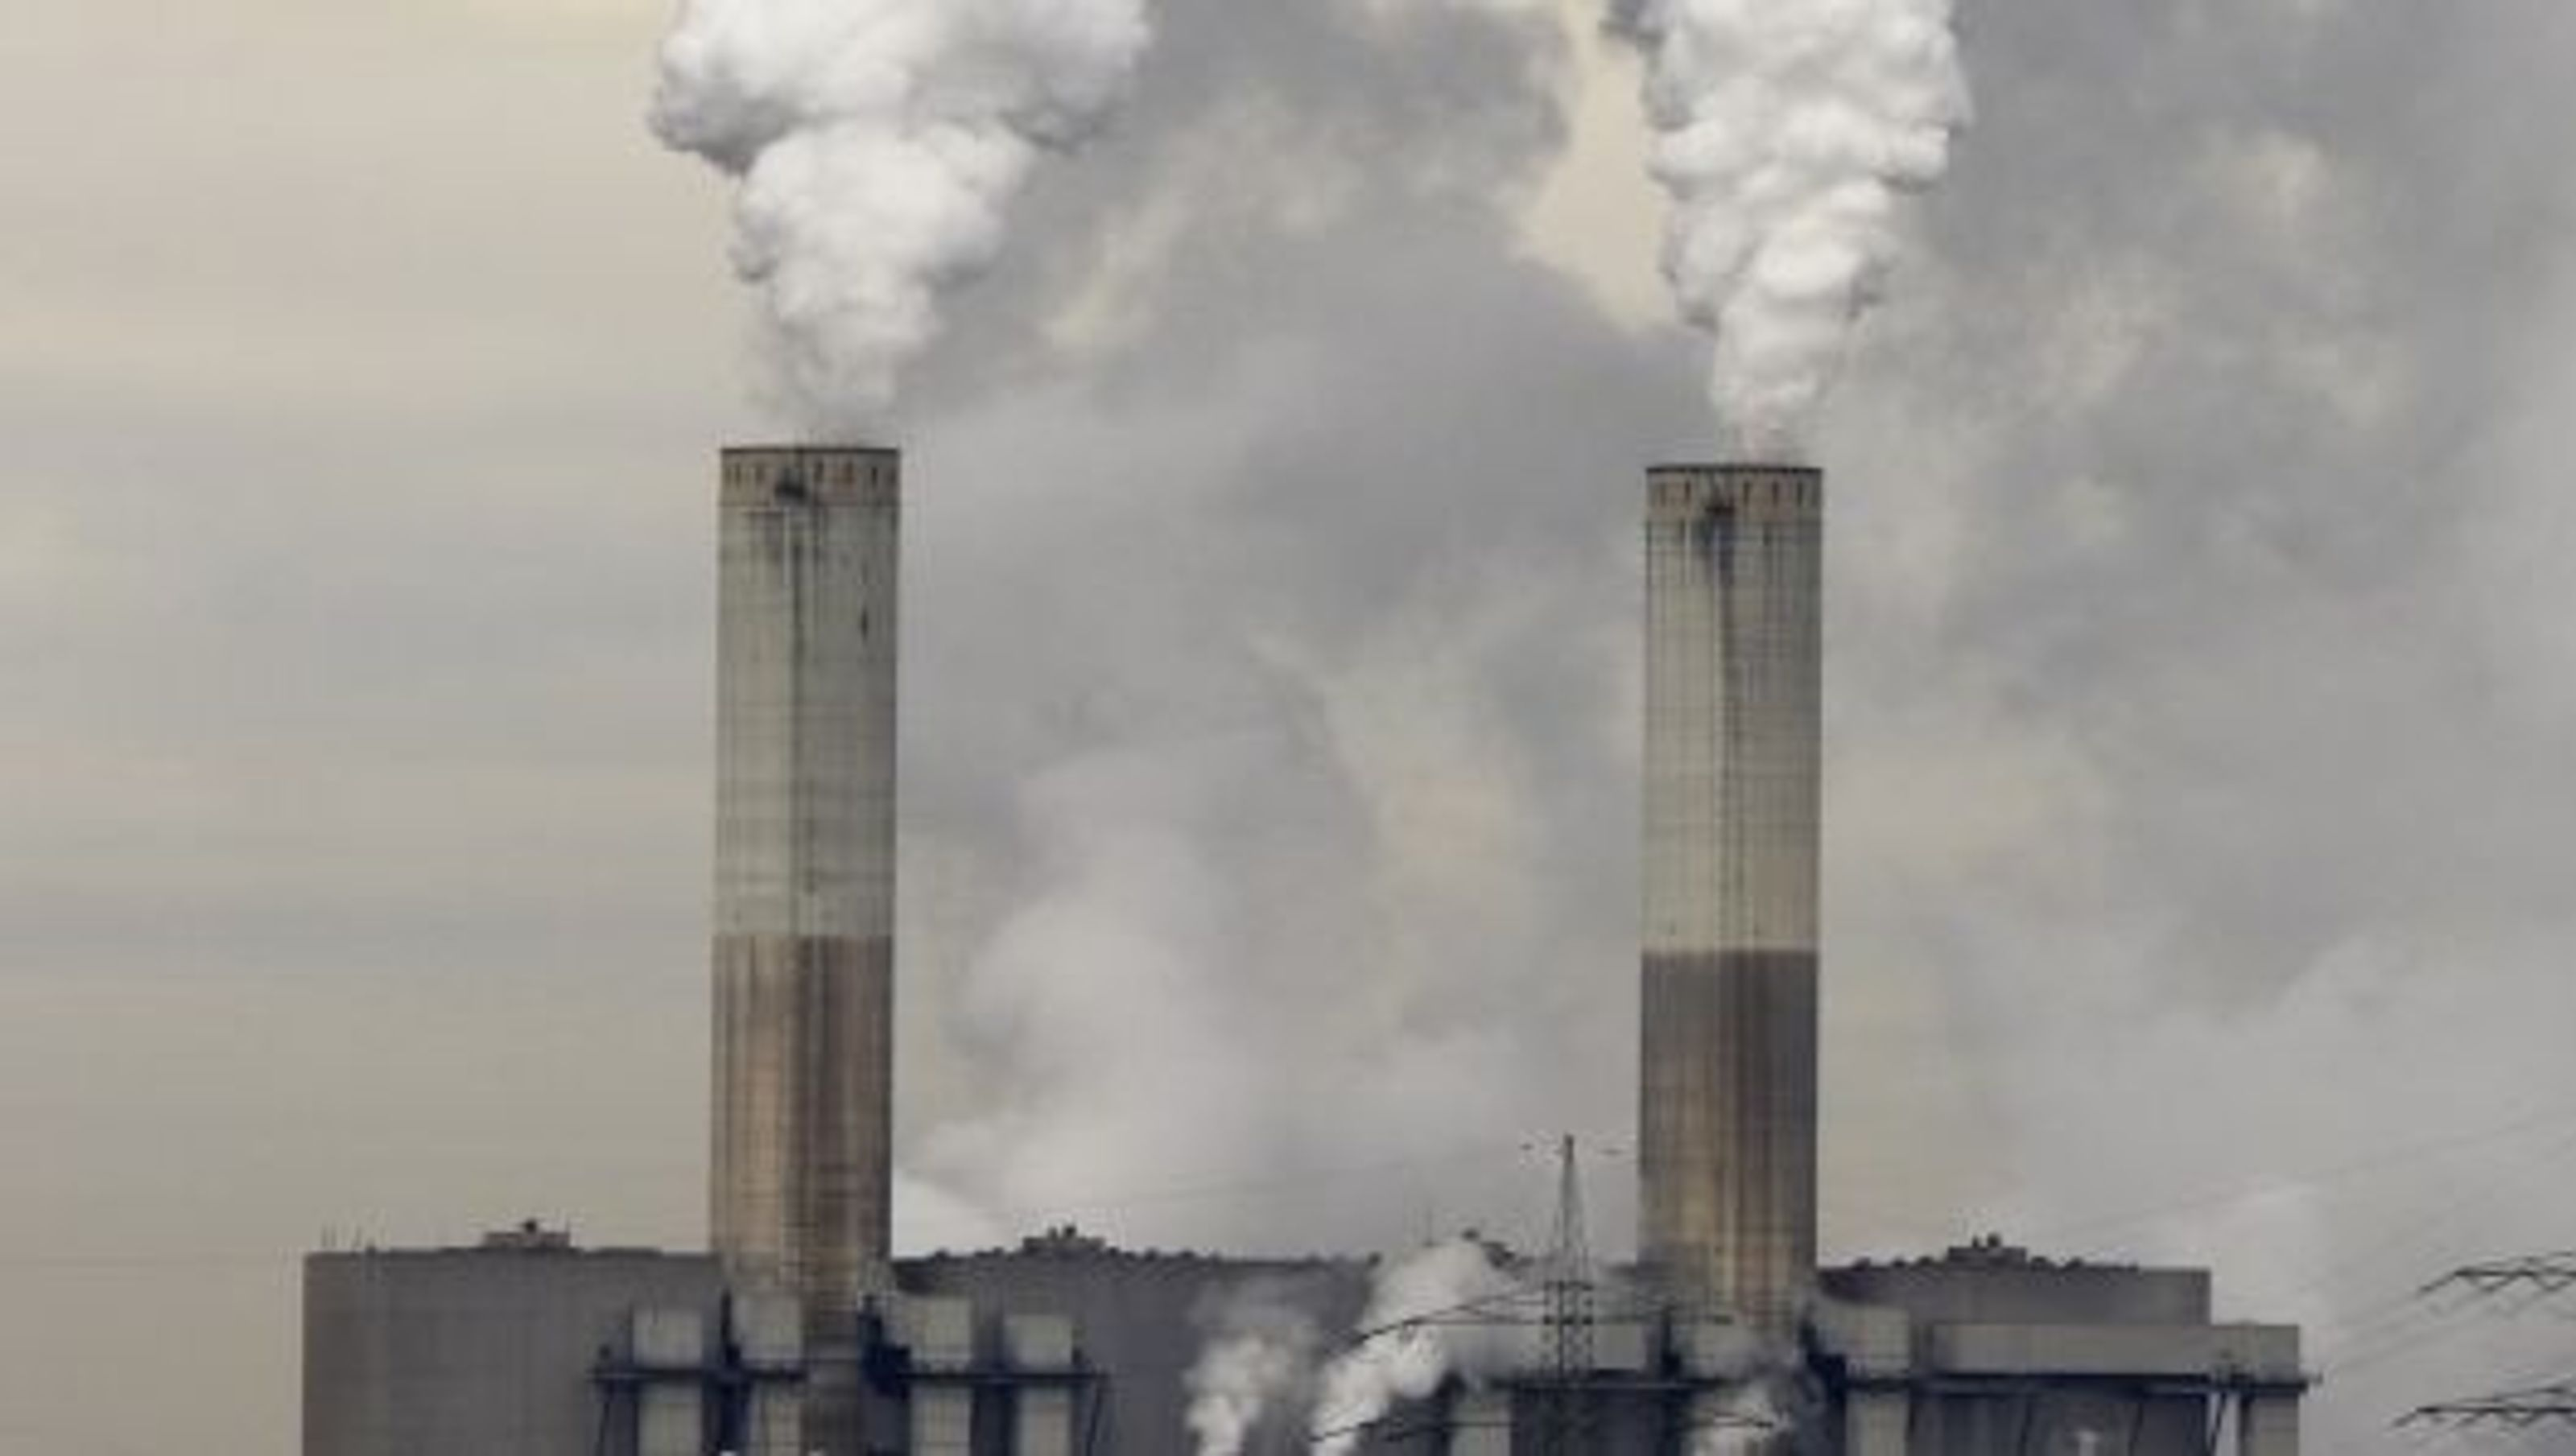 Study finds a race gap in air pollution — whites largely